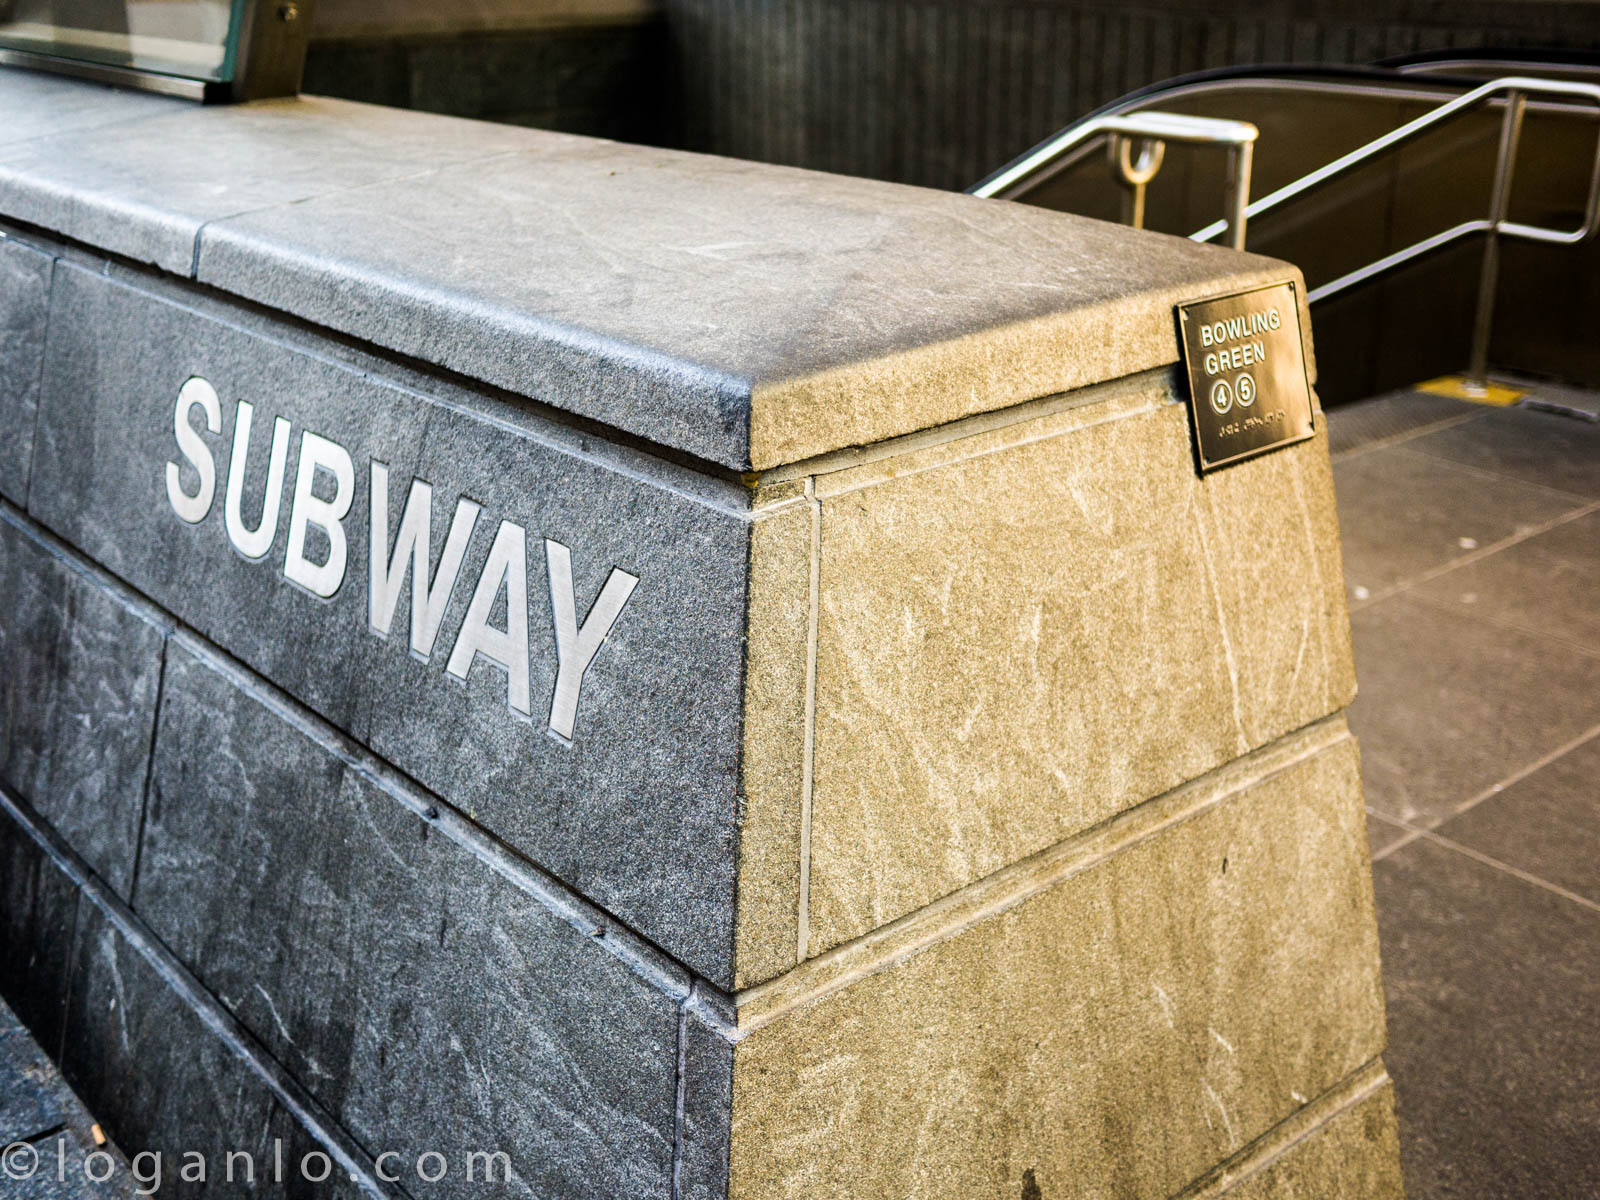 Subway Station at Bowling Green NYC